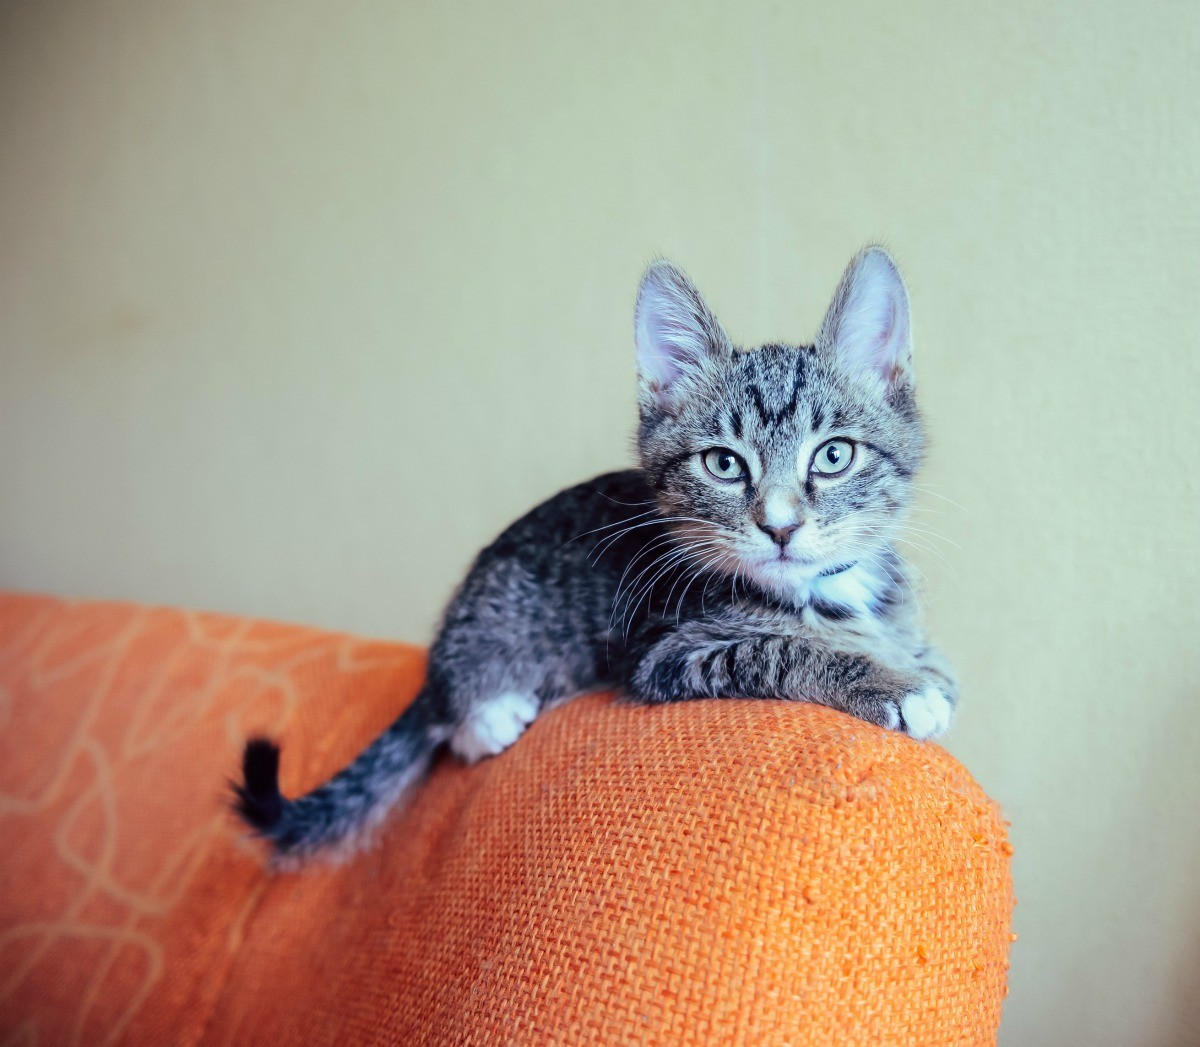 Tremendous Keeping Cats From Peeing On A Couch Thriftyfun Pabps2019 Chair Design Images Pabps2019Com